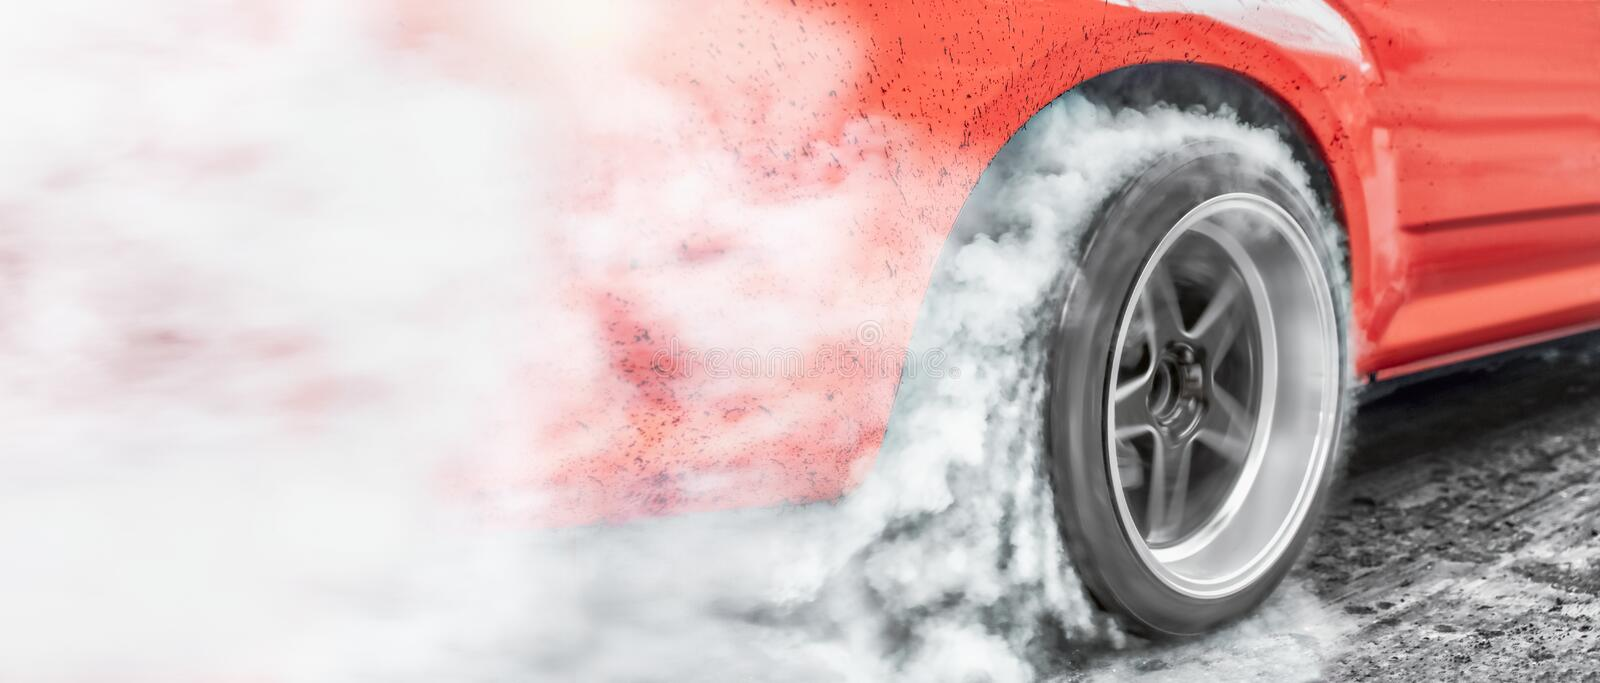 Drag racing car burn tire in preparation for the race. Drag racing car burns rubber off its tires in preparation for the race royalty free stock photo